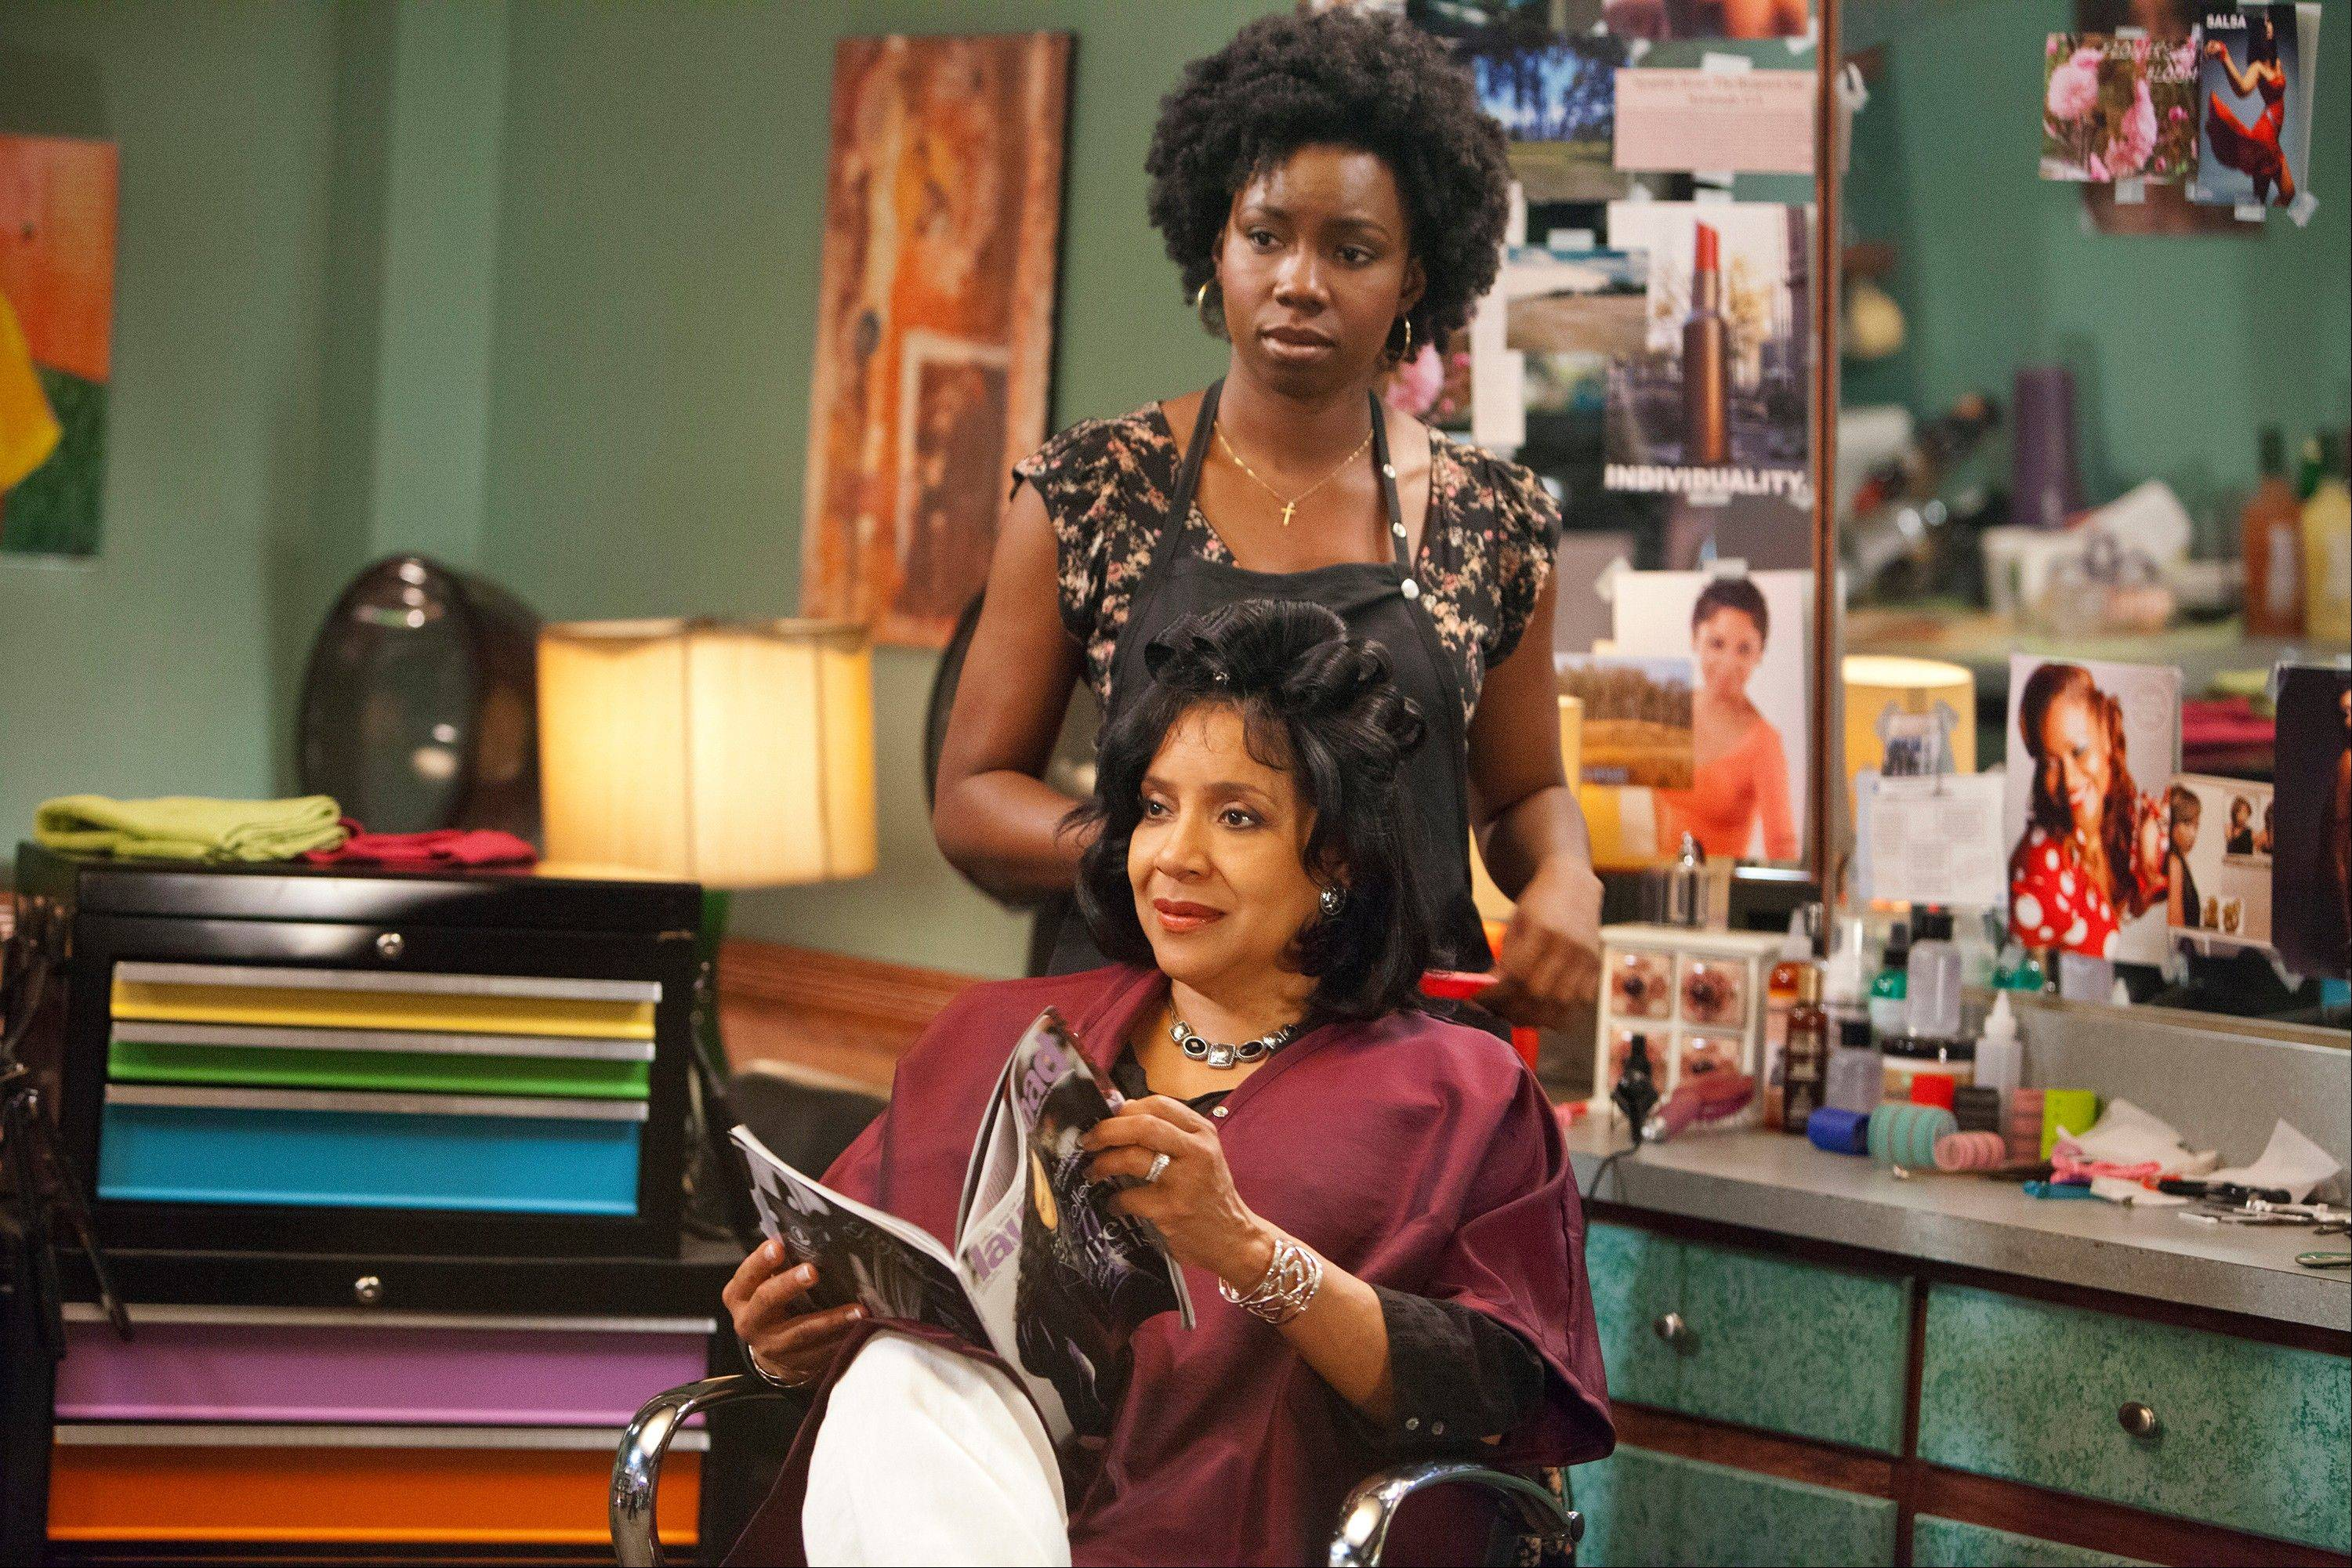 Adepero Oduye plays Annelle and Phylicia Rashad is Clairee in �Steel Magnolias,� premiering at 8 p.m. Sunday, Oct. 7, on Lifetime.